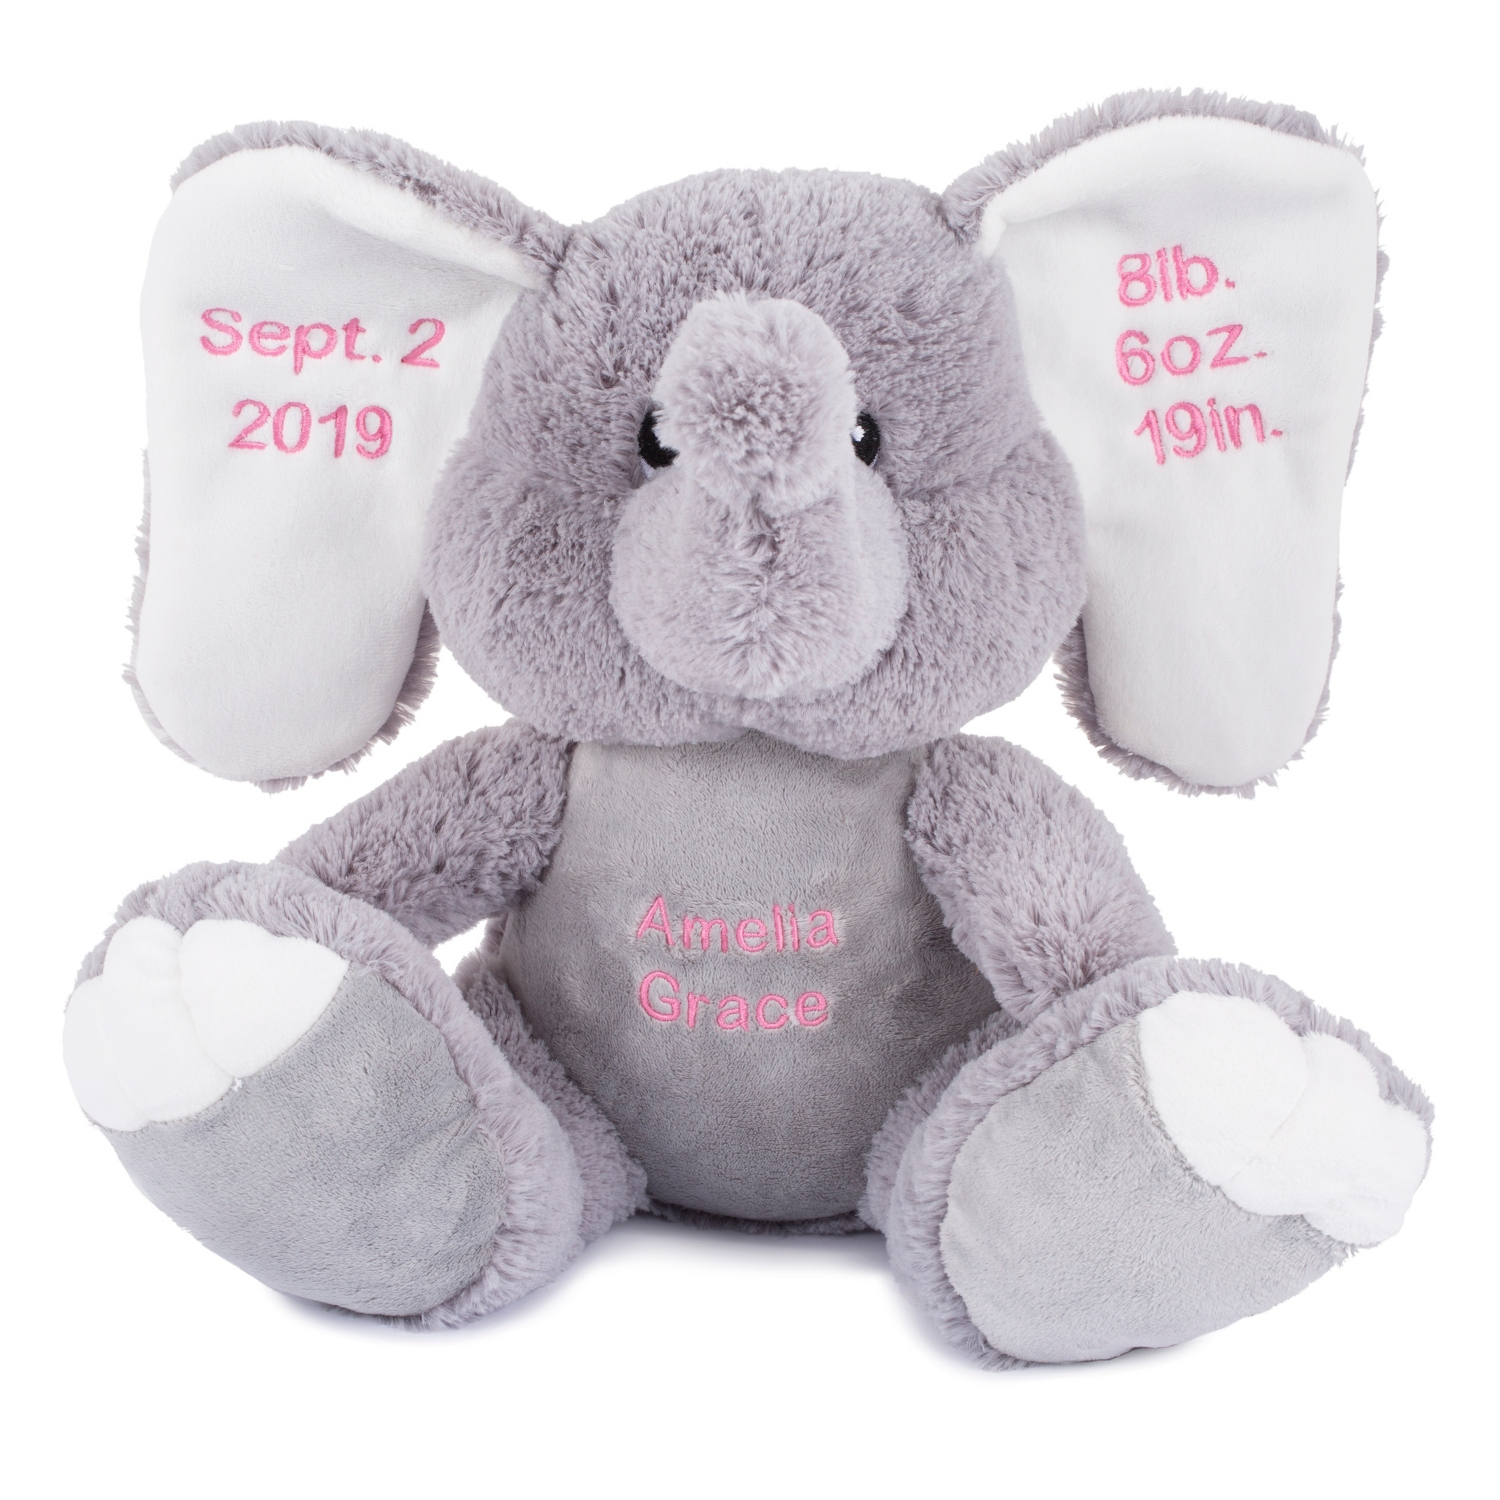 Personalized gifts for babies and newborns at things remembered plush elephant plush elephant negle Image collections